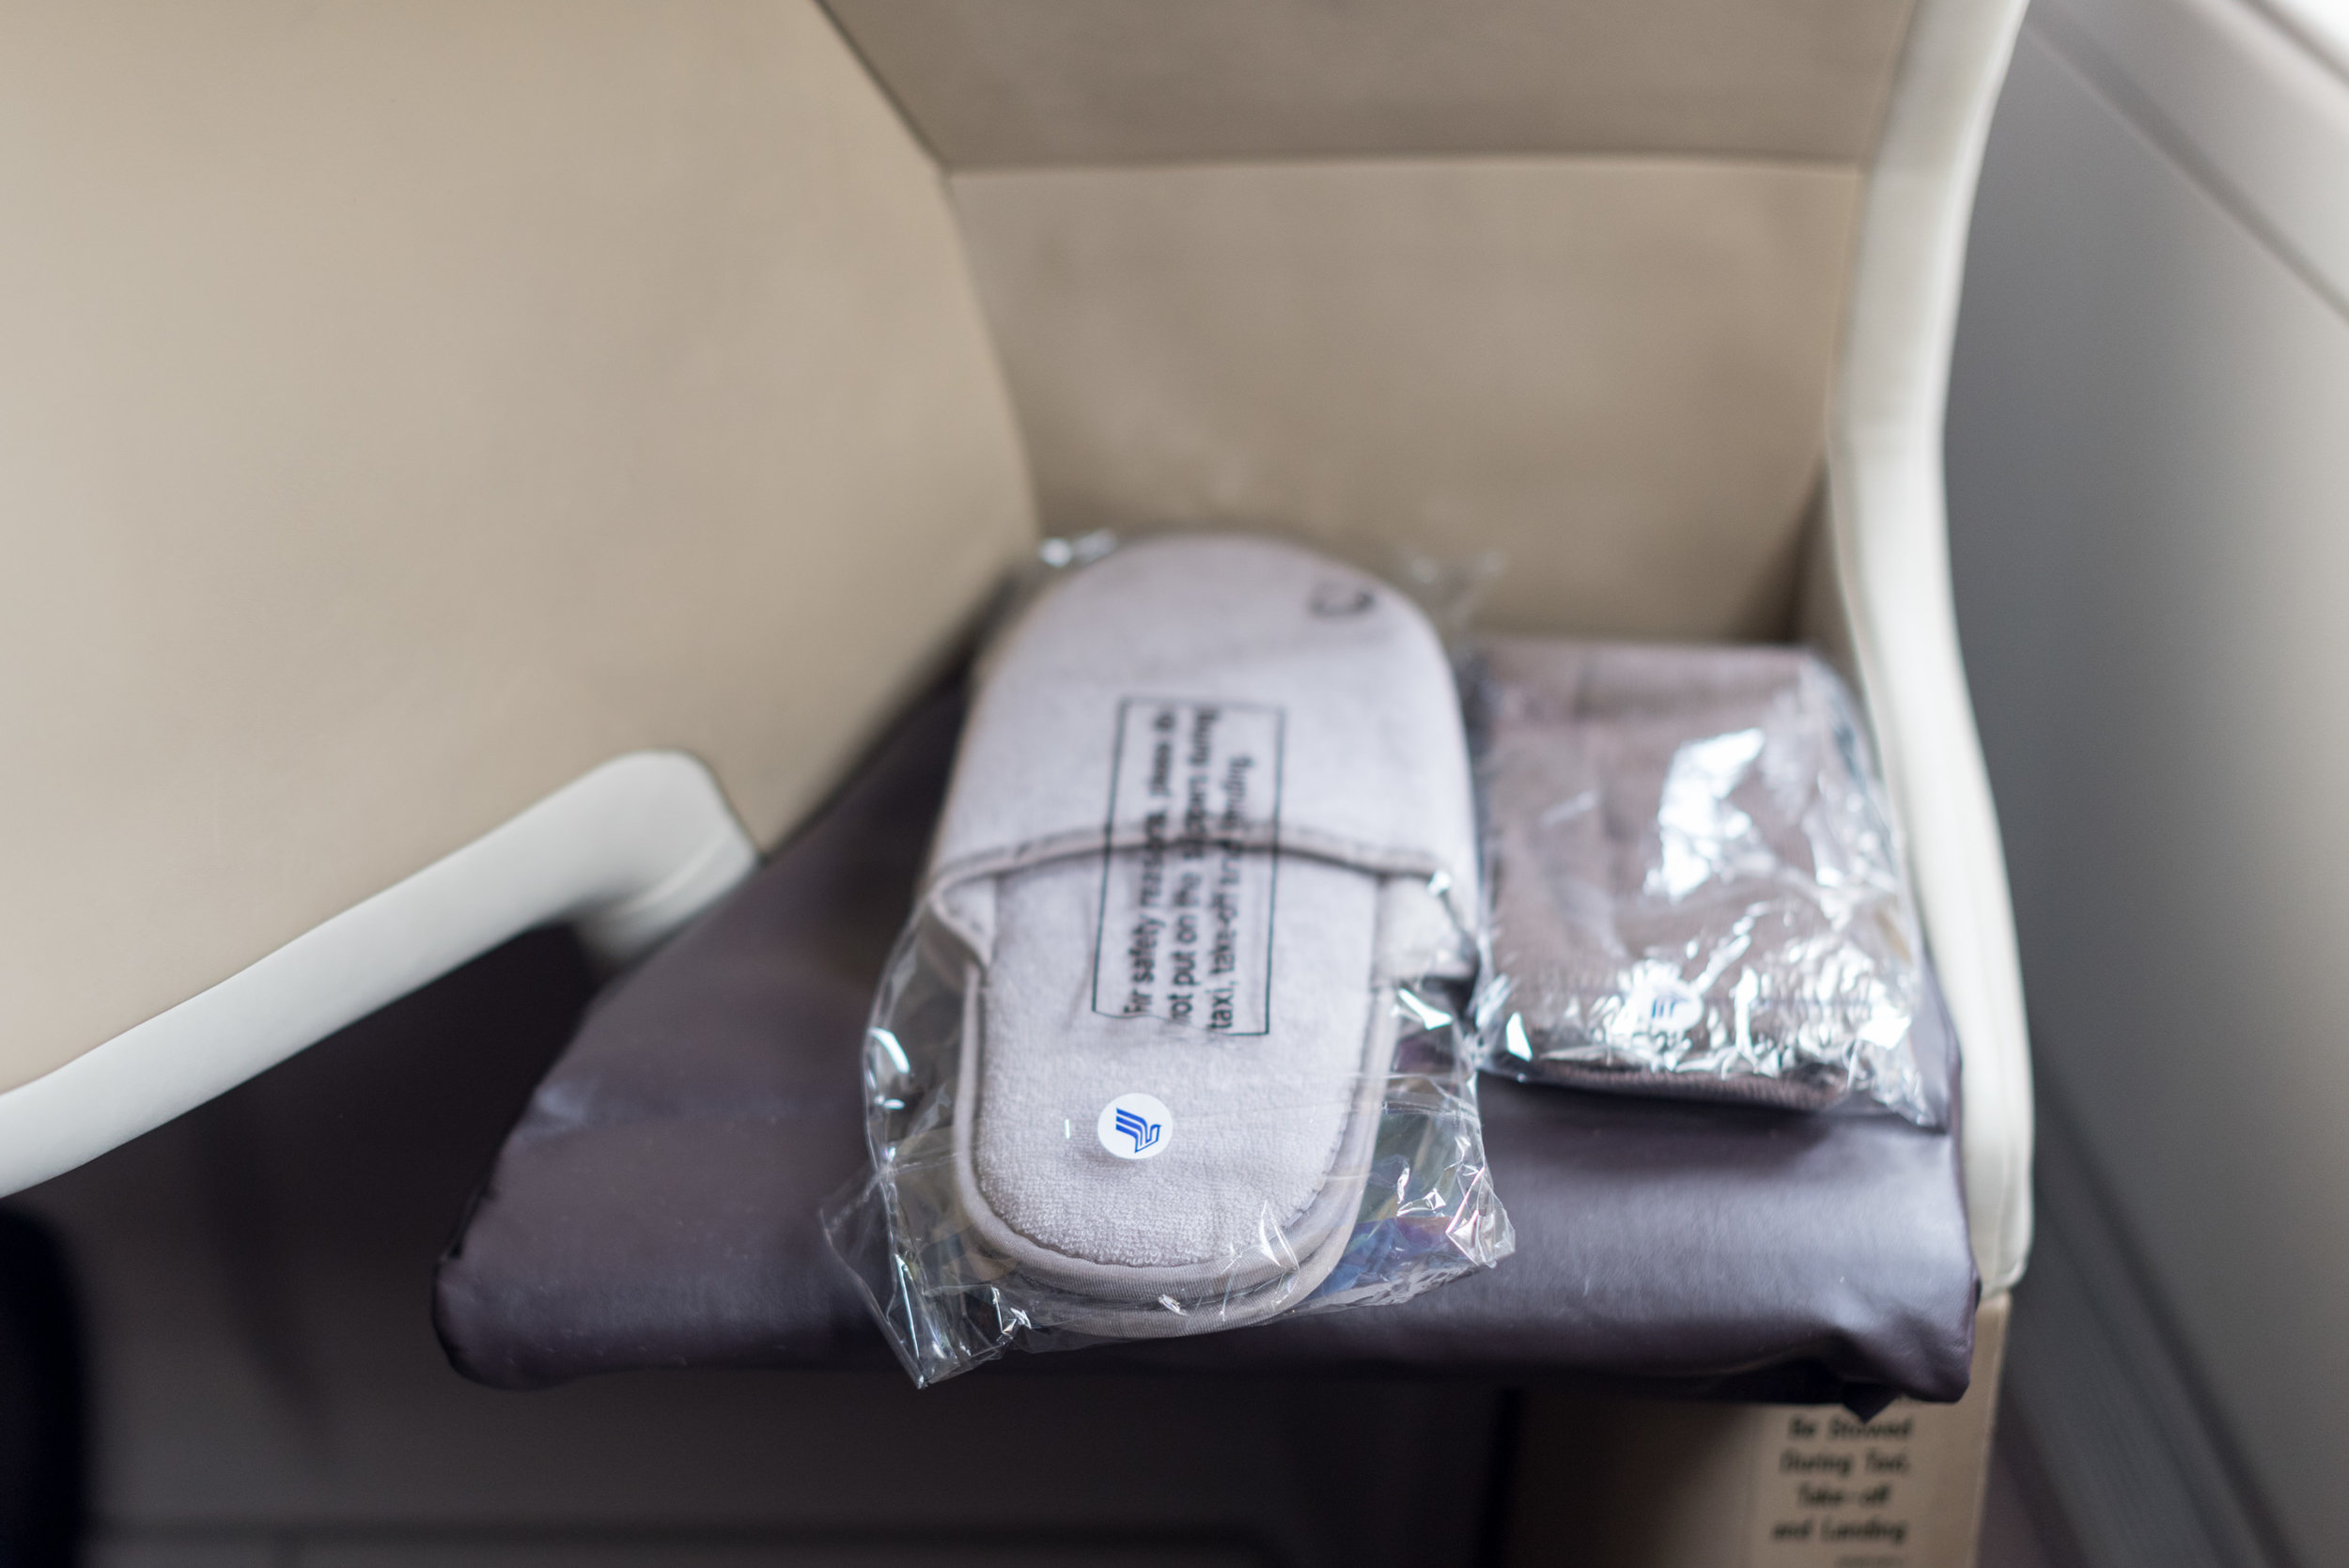 Socks and Slippers  Singapore Airlines Business Class SQ286 A380-800 - AKL to SIN